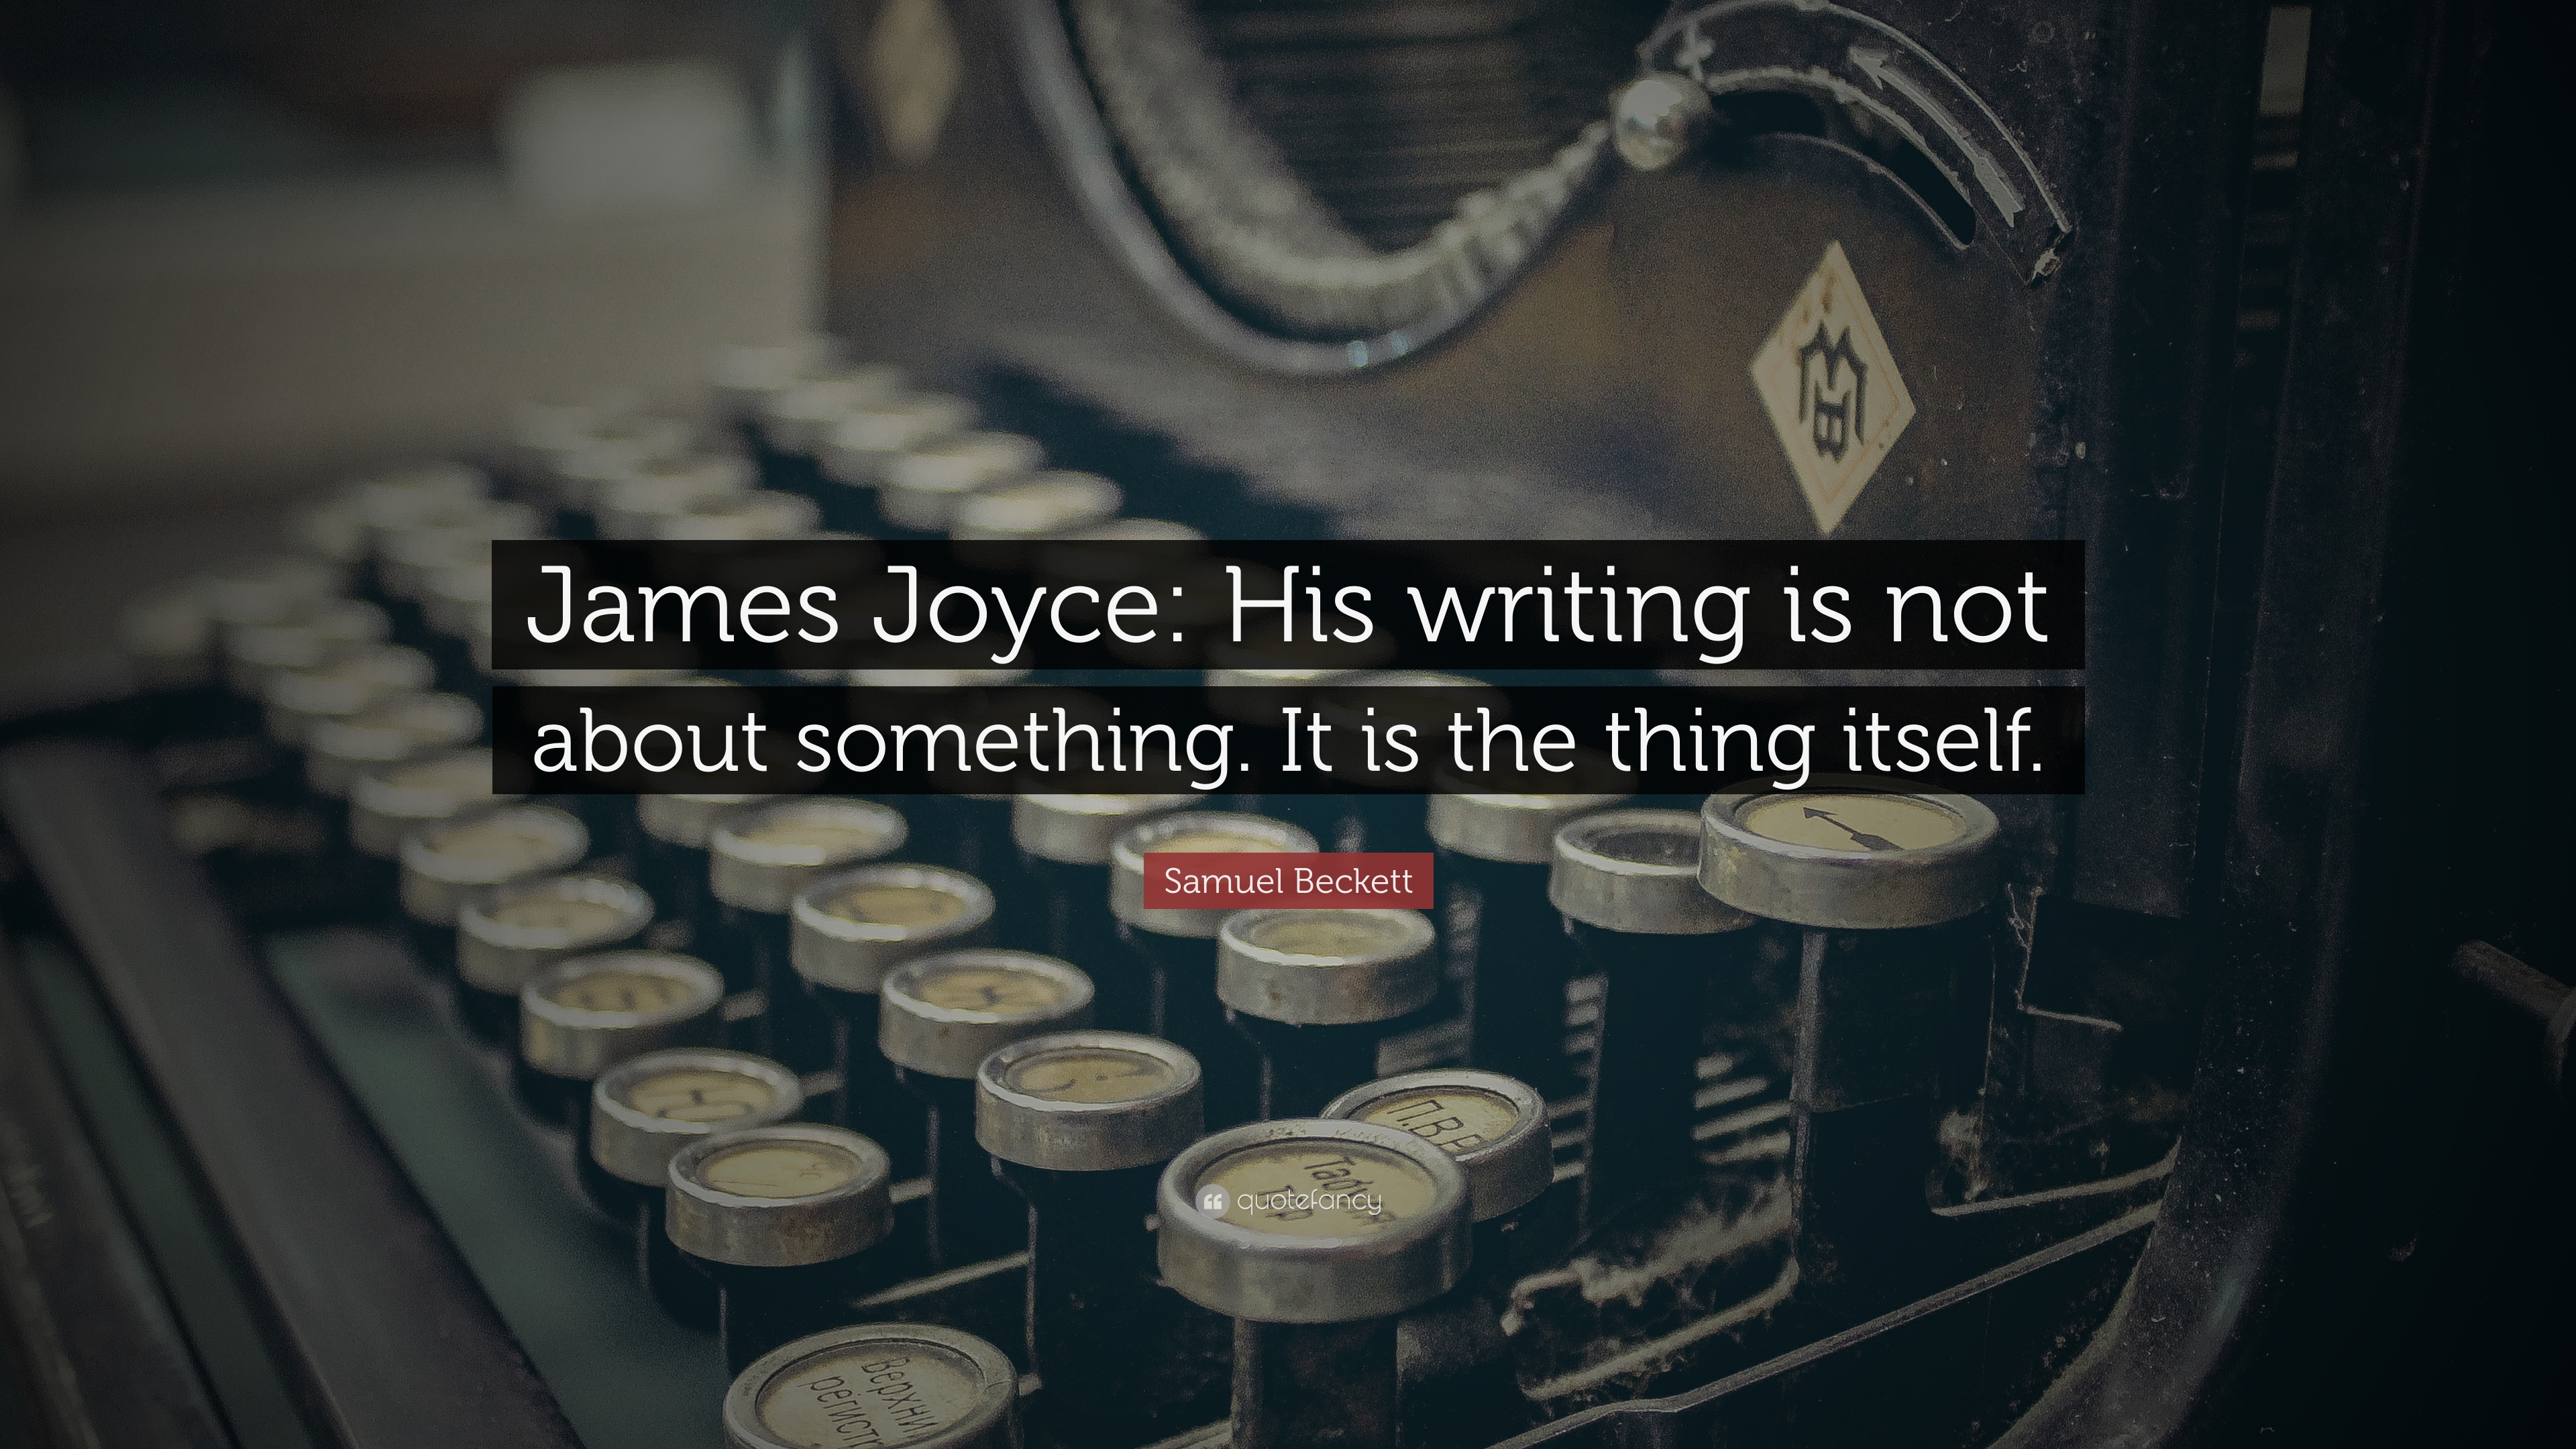 samuel beckett essay on james joyce Samuel beckett is dead at 83 his 'godot' changed theater  inspired by james  joyce, move subliminally into the minds of the characters  he wrote poetry and  essays on the arts, including an essay about marcel proust (one of his.